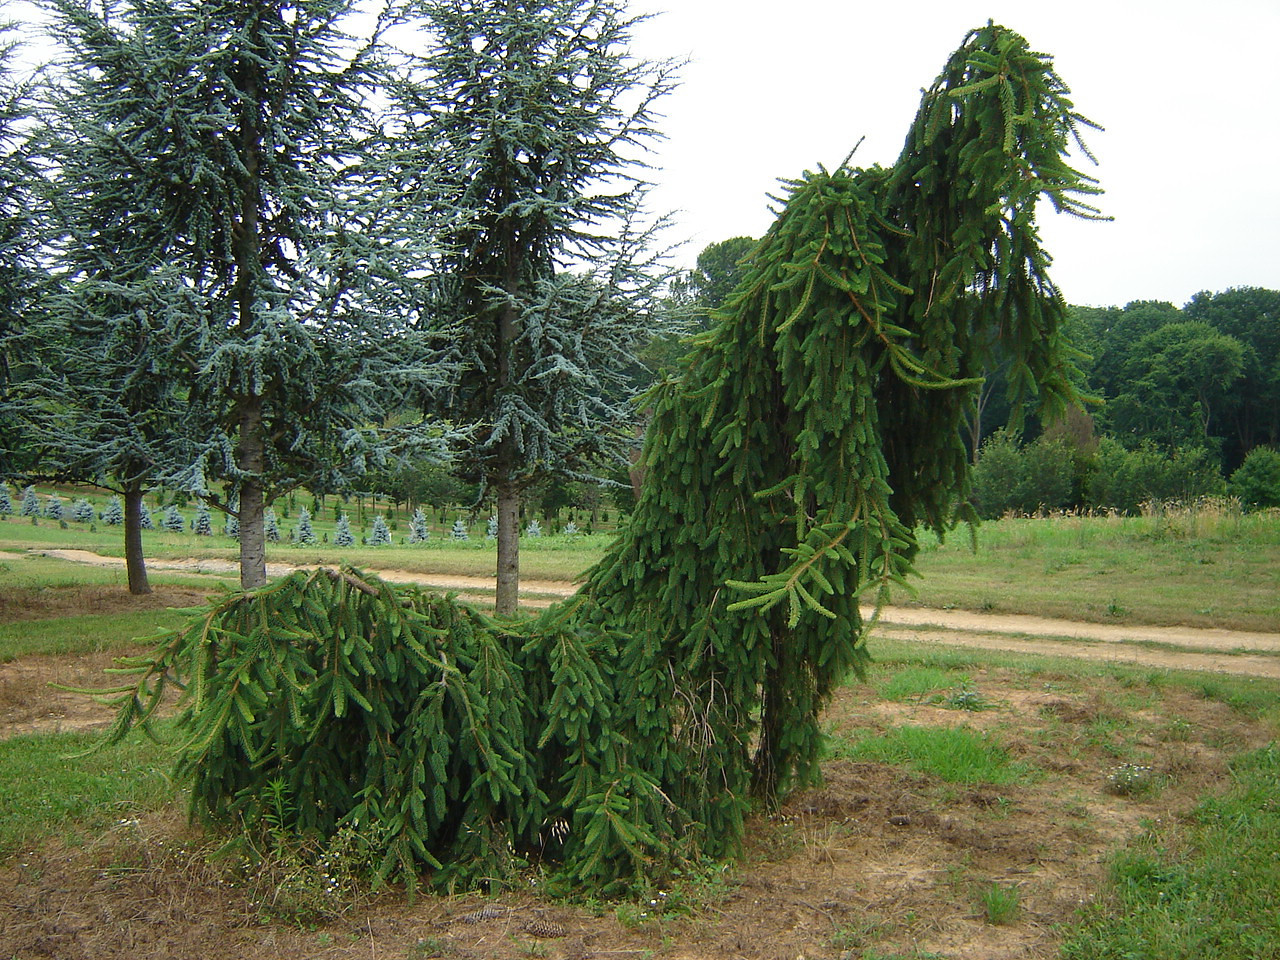 Picea abies 'Pendula' (specimen)  Weeping Norway Spruce 8-10' high x 8' wide